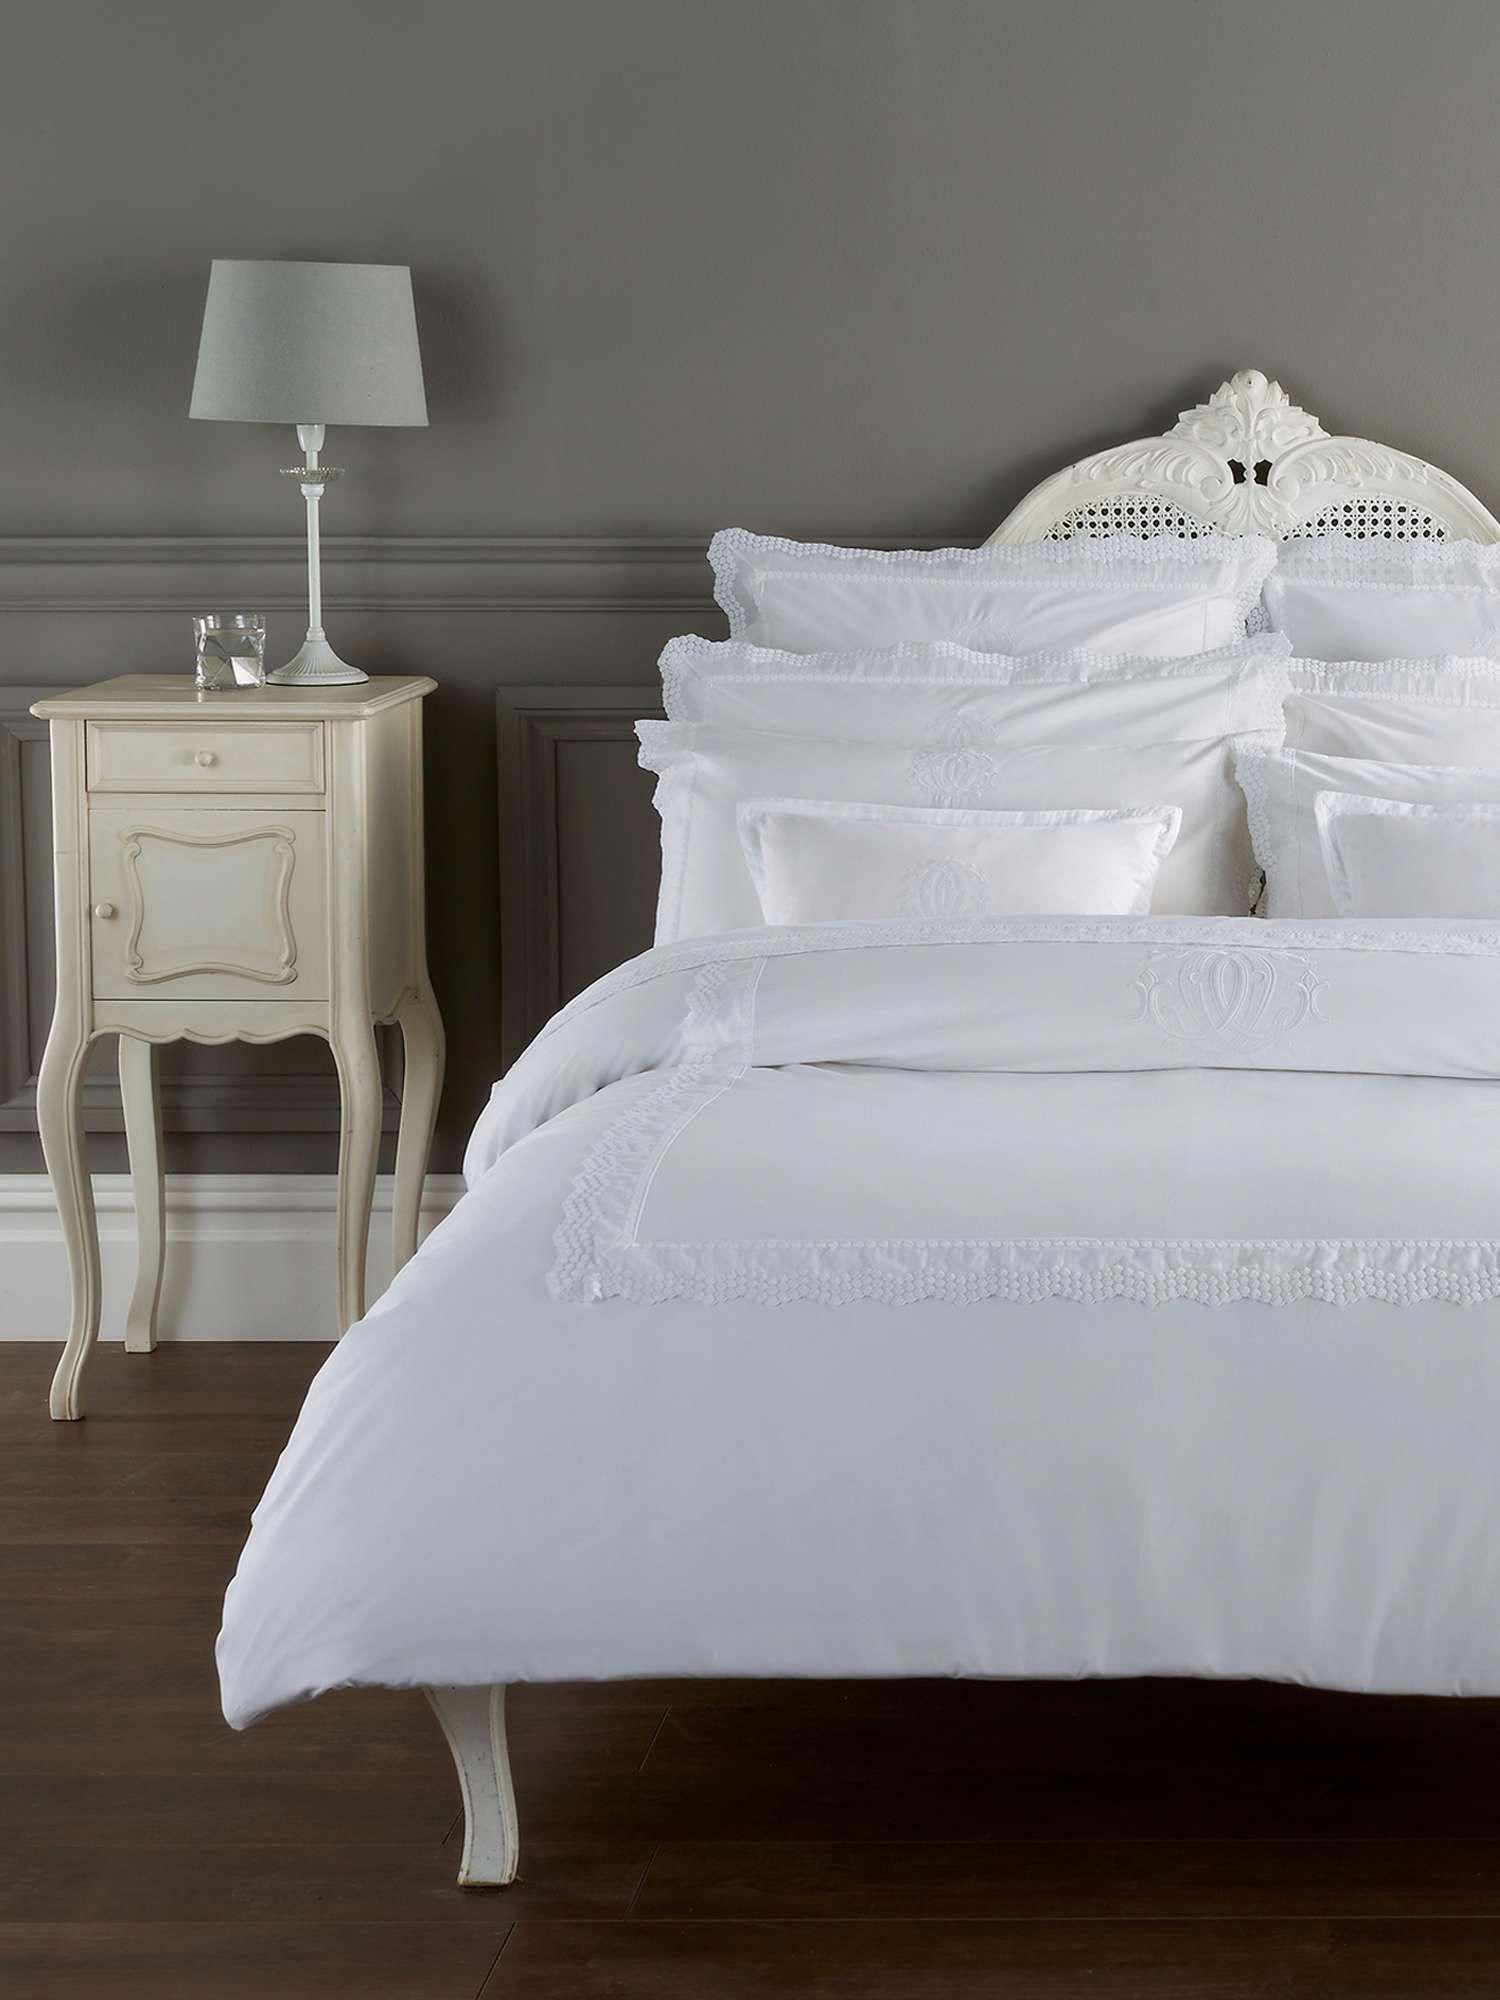 Buy Your Christy Charlton Bed Linen Range Online Now At House Of